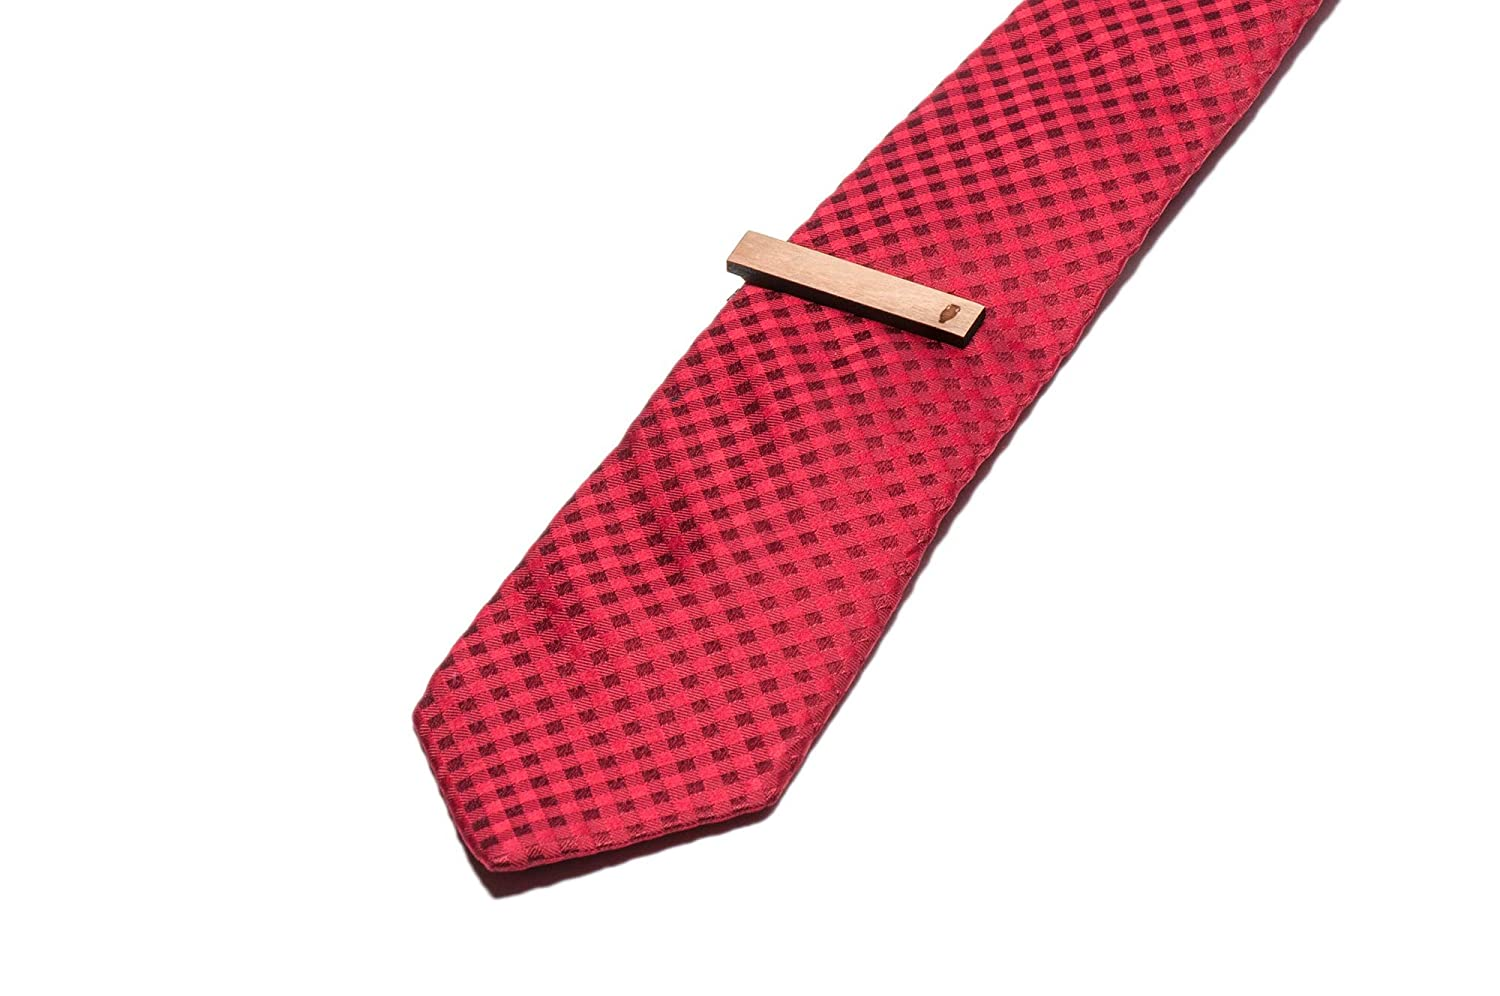 Cherry Wood Tie Bar Engraved in The USA Wooden Accessories Company Wooden Tie Clips with Laser Engraved Greek Vase Design